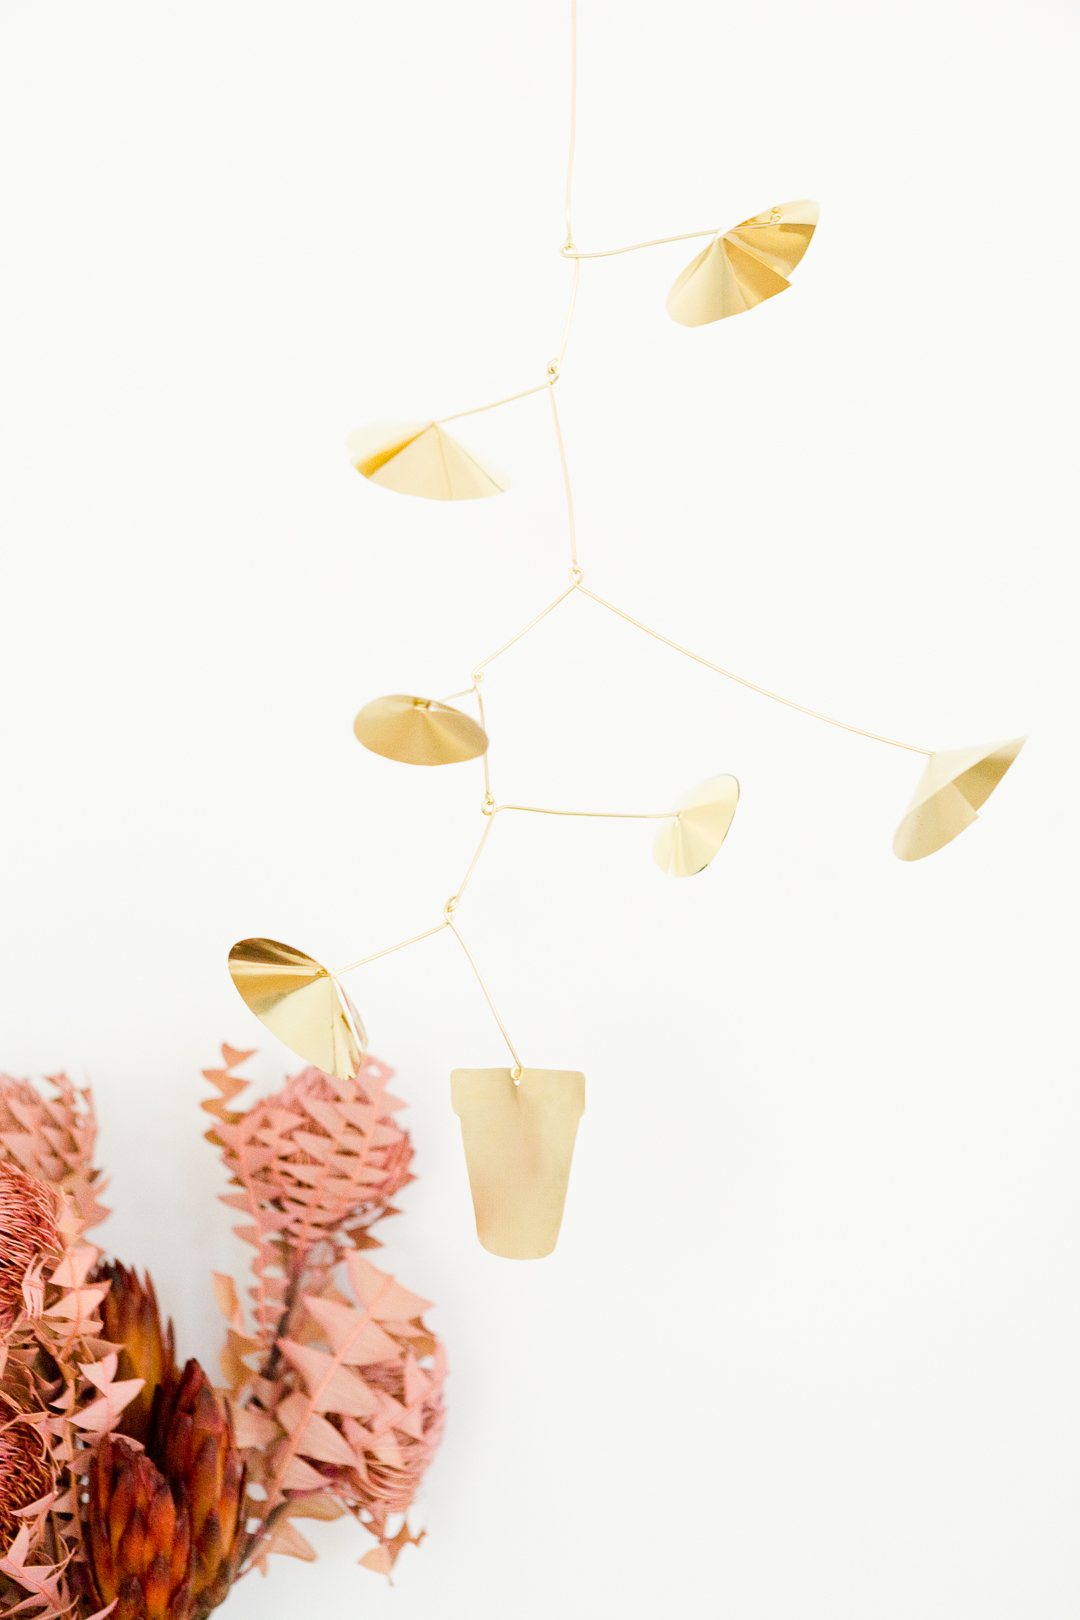 DIY Brass Plant Mobile - free template and how-to http://ruffledblog.com/diy-plant-brass-mobile